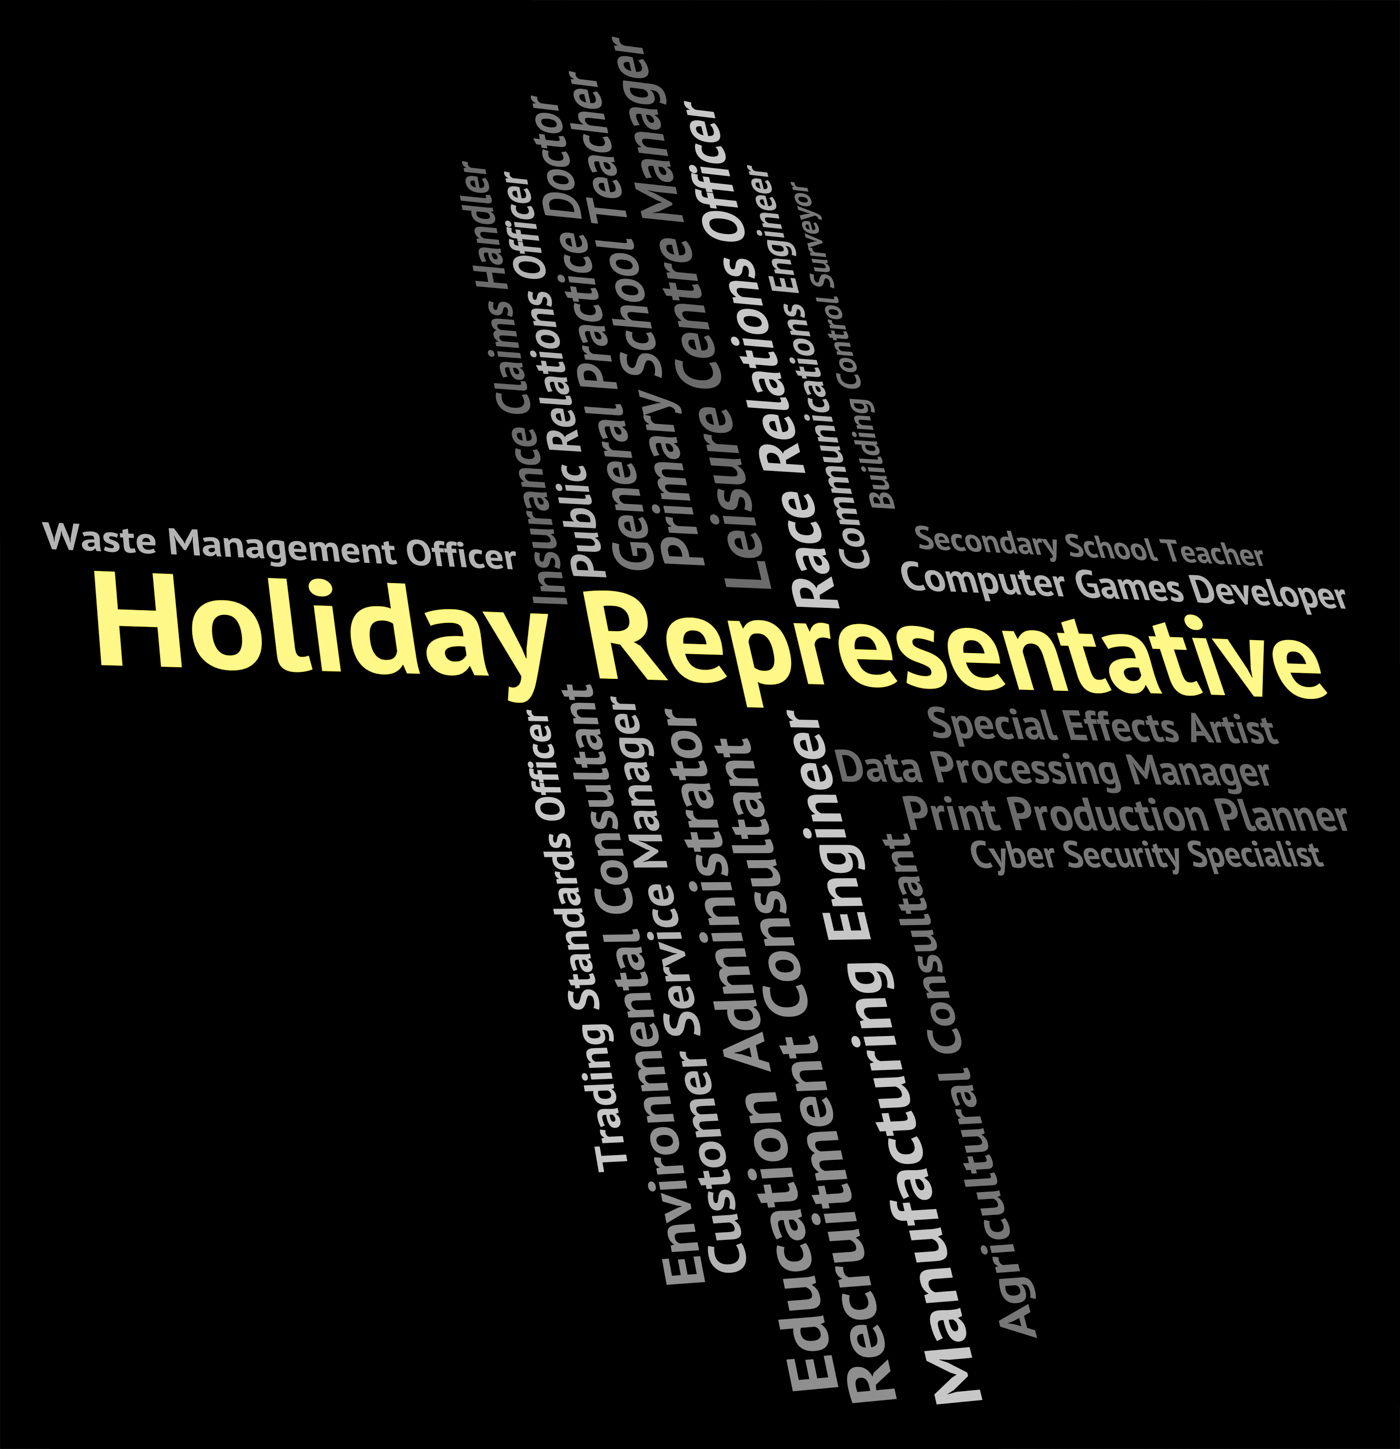 Holiday representative means go on leave and career photo